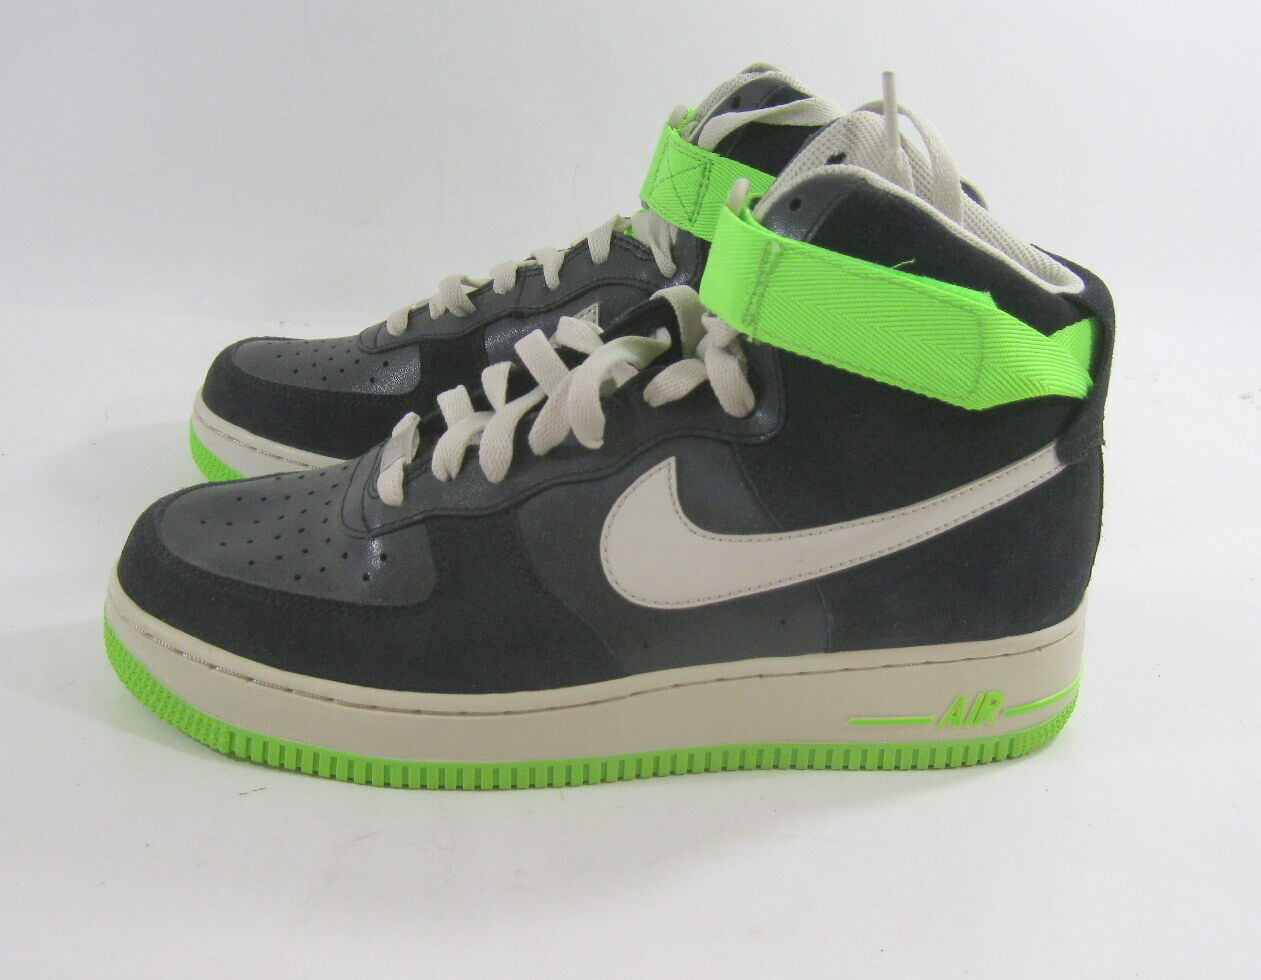 New women Nike Air Force Force Force 1 Black Electric Green Boan 334031-005 Size 8.5 698194